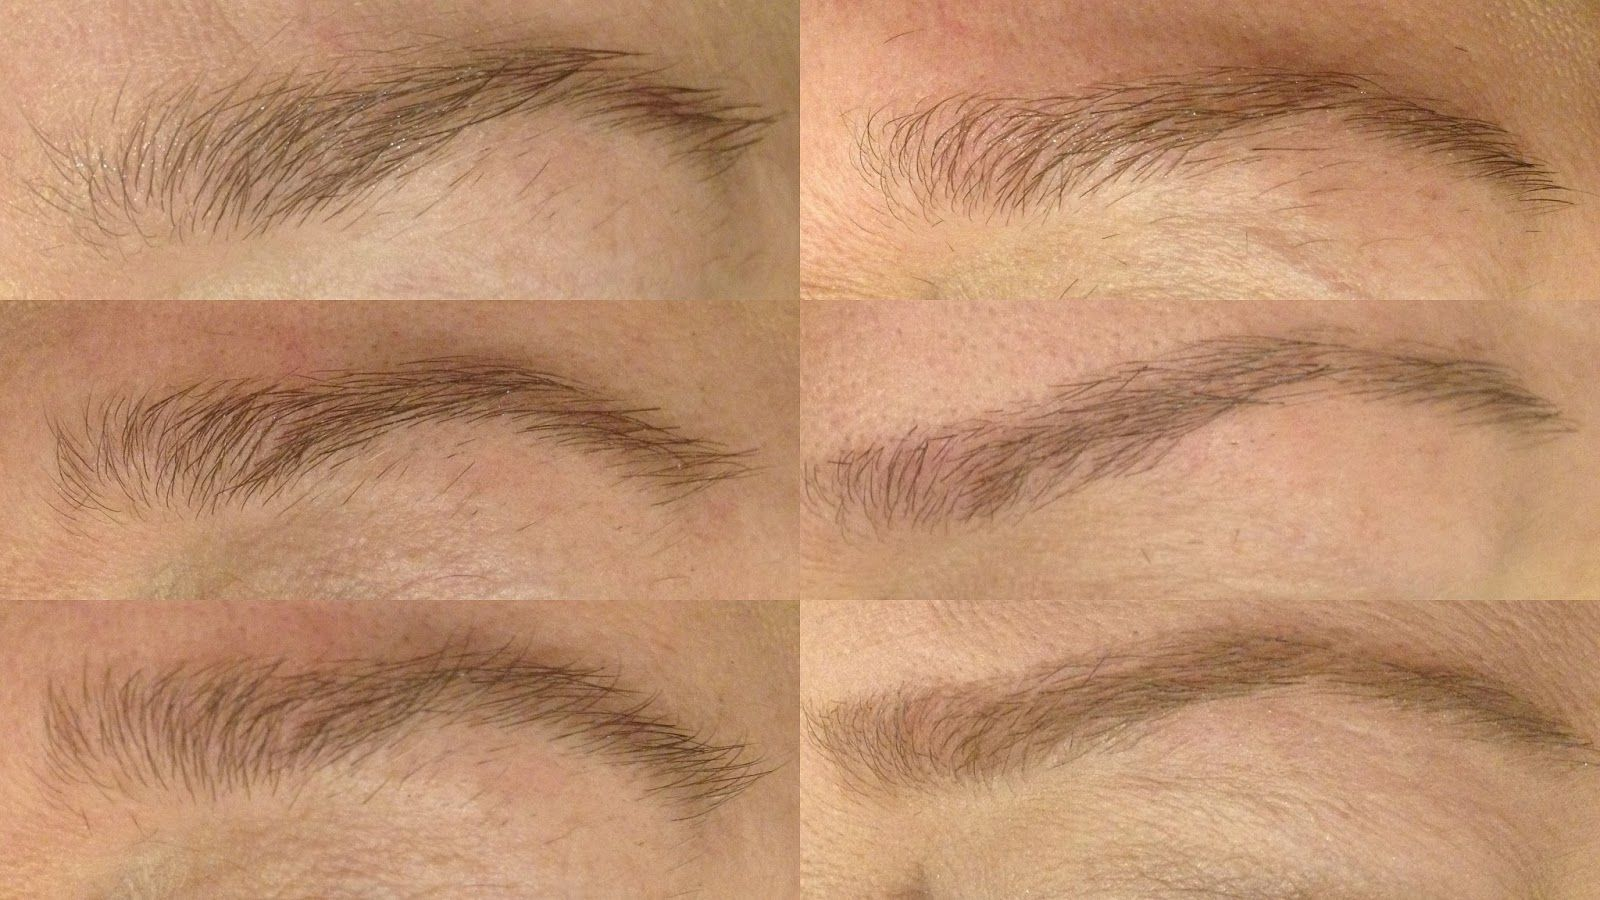 How To Shape Groom Cut Razor Brows Natural Brows Step My Step